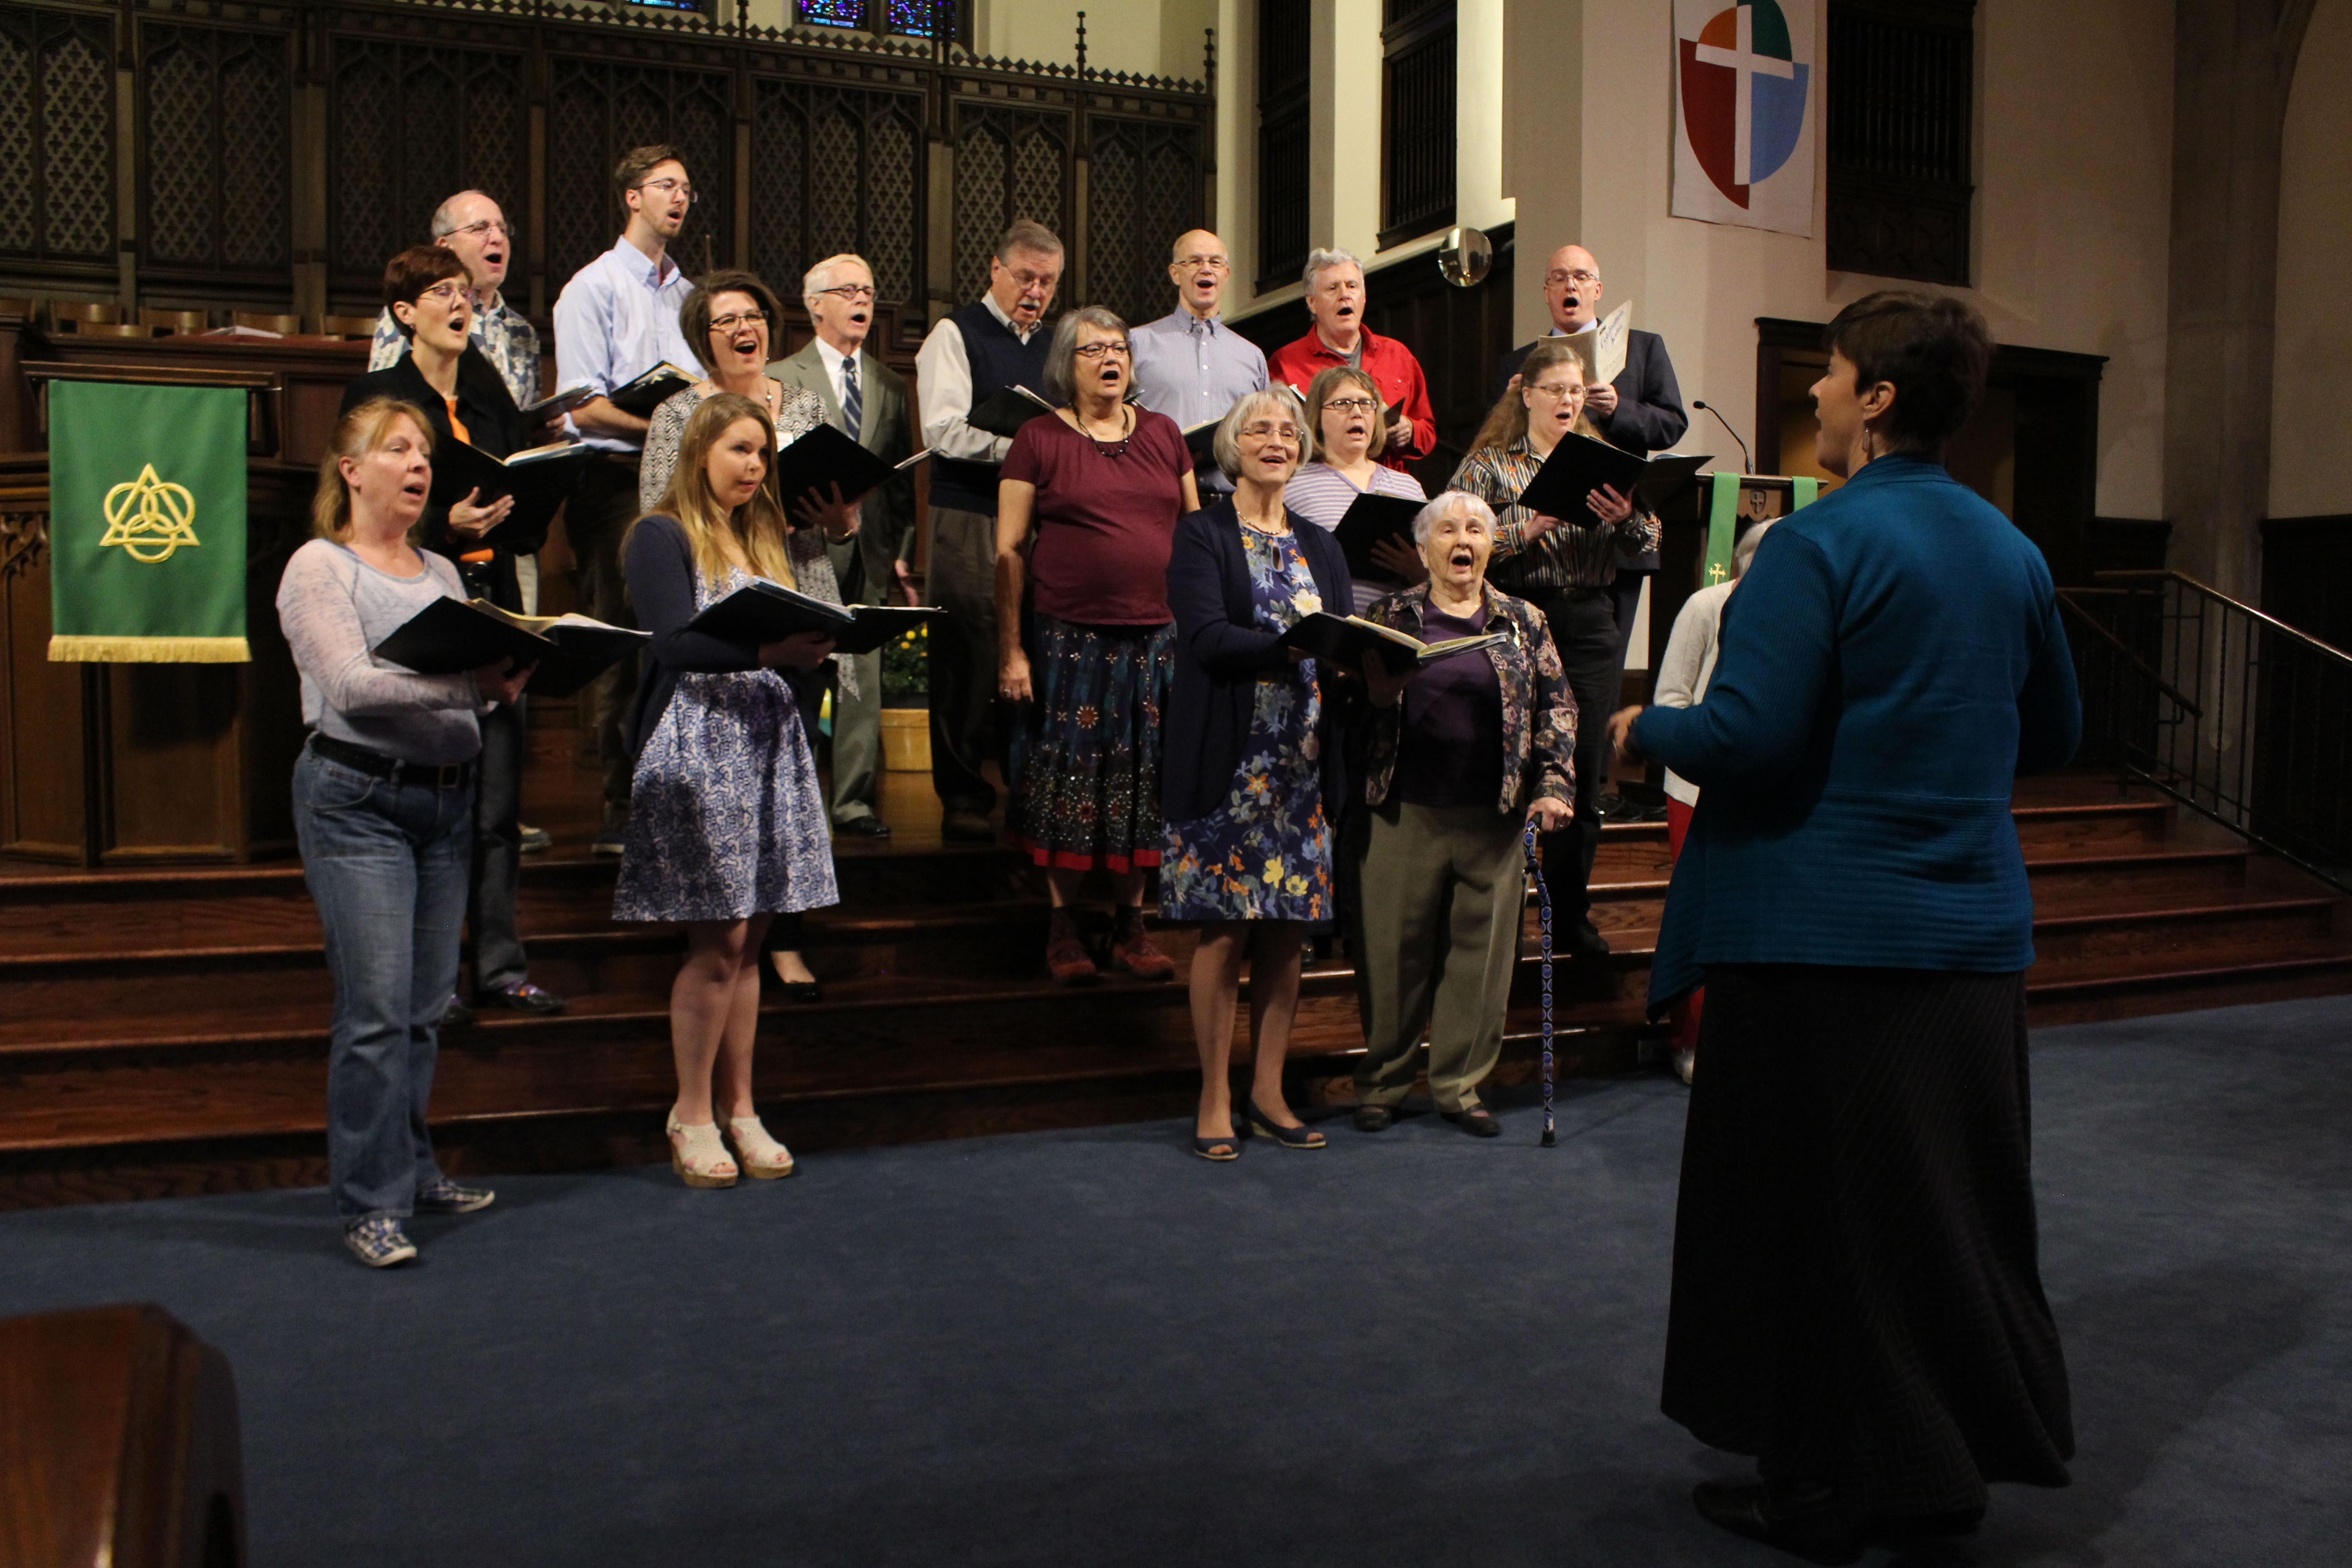 Sundays at FCC - First Central Congregational Church